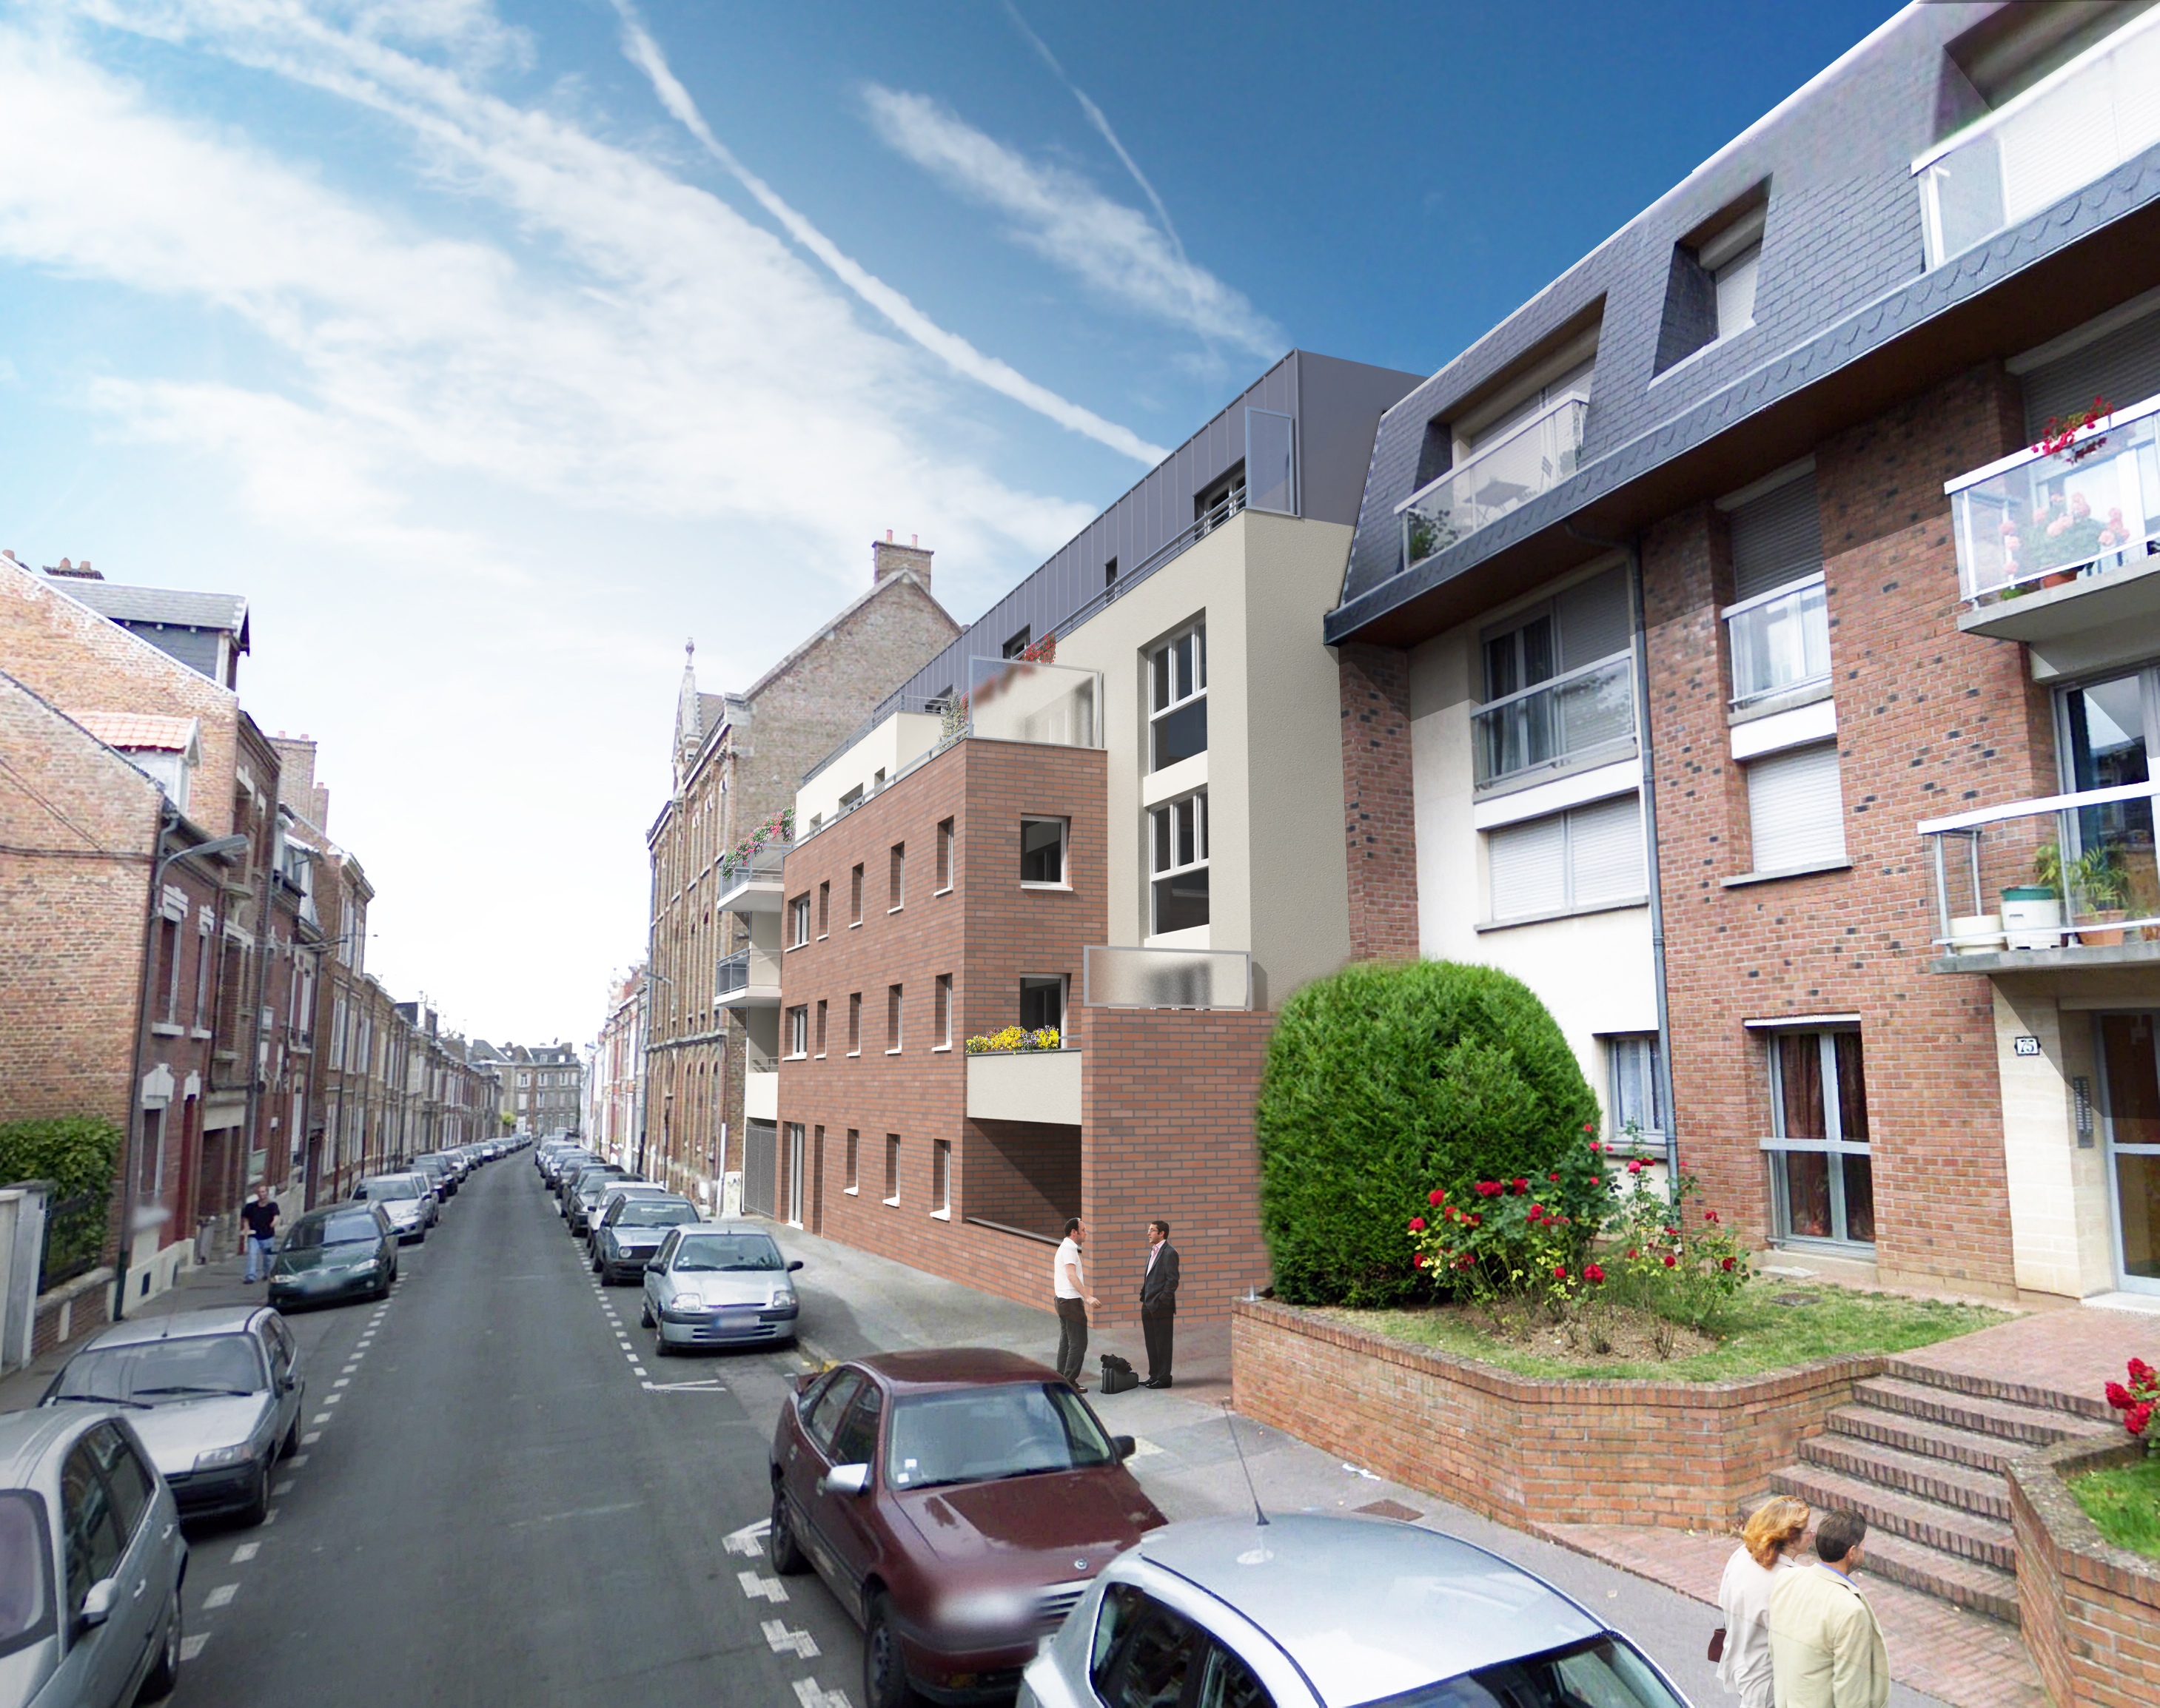 Programme immobilier neuf somme investissement locatif for Programme immobilier neuf region parisienne